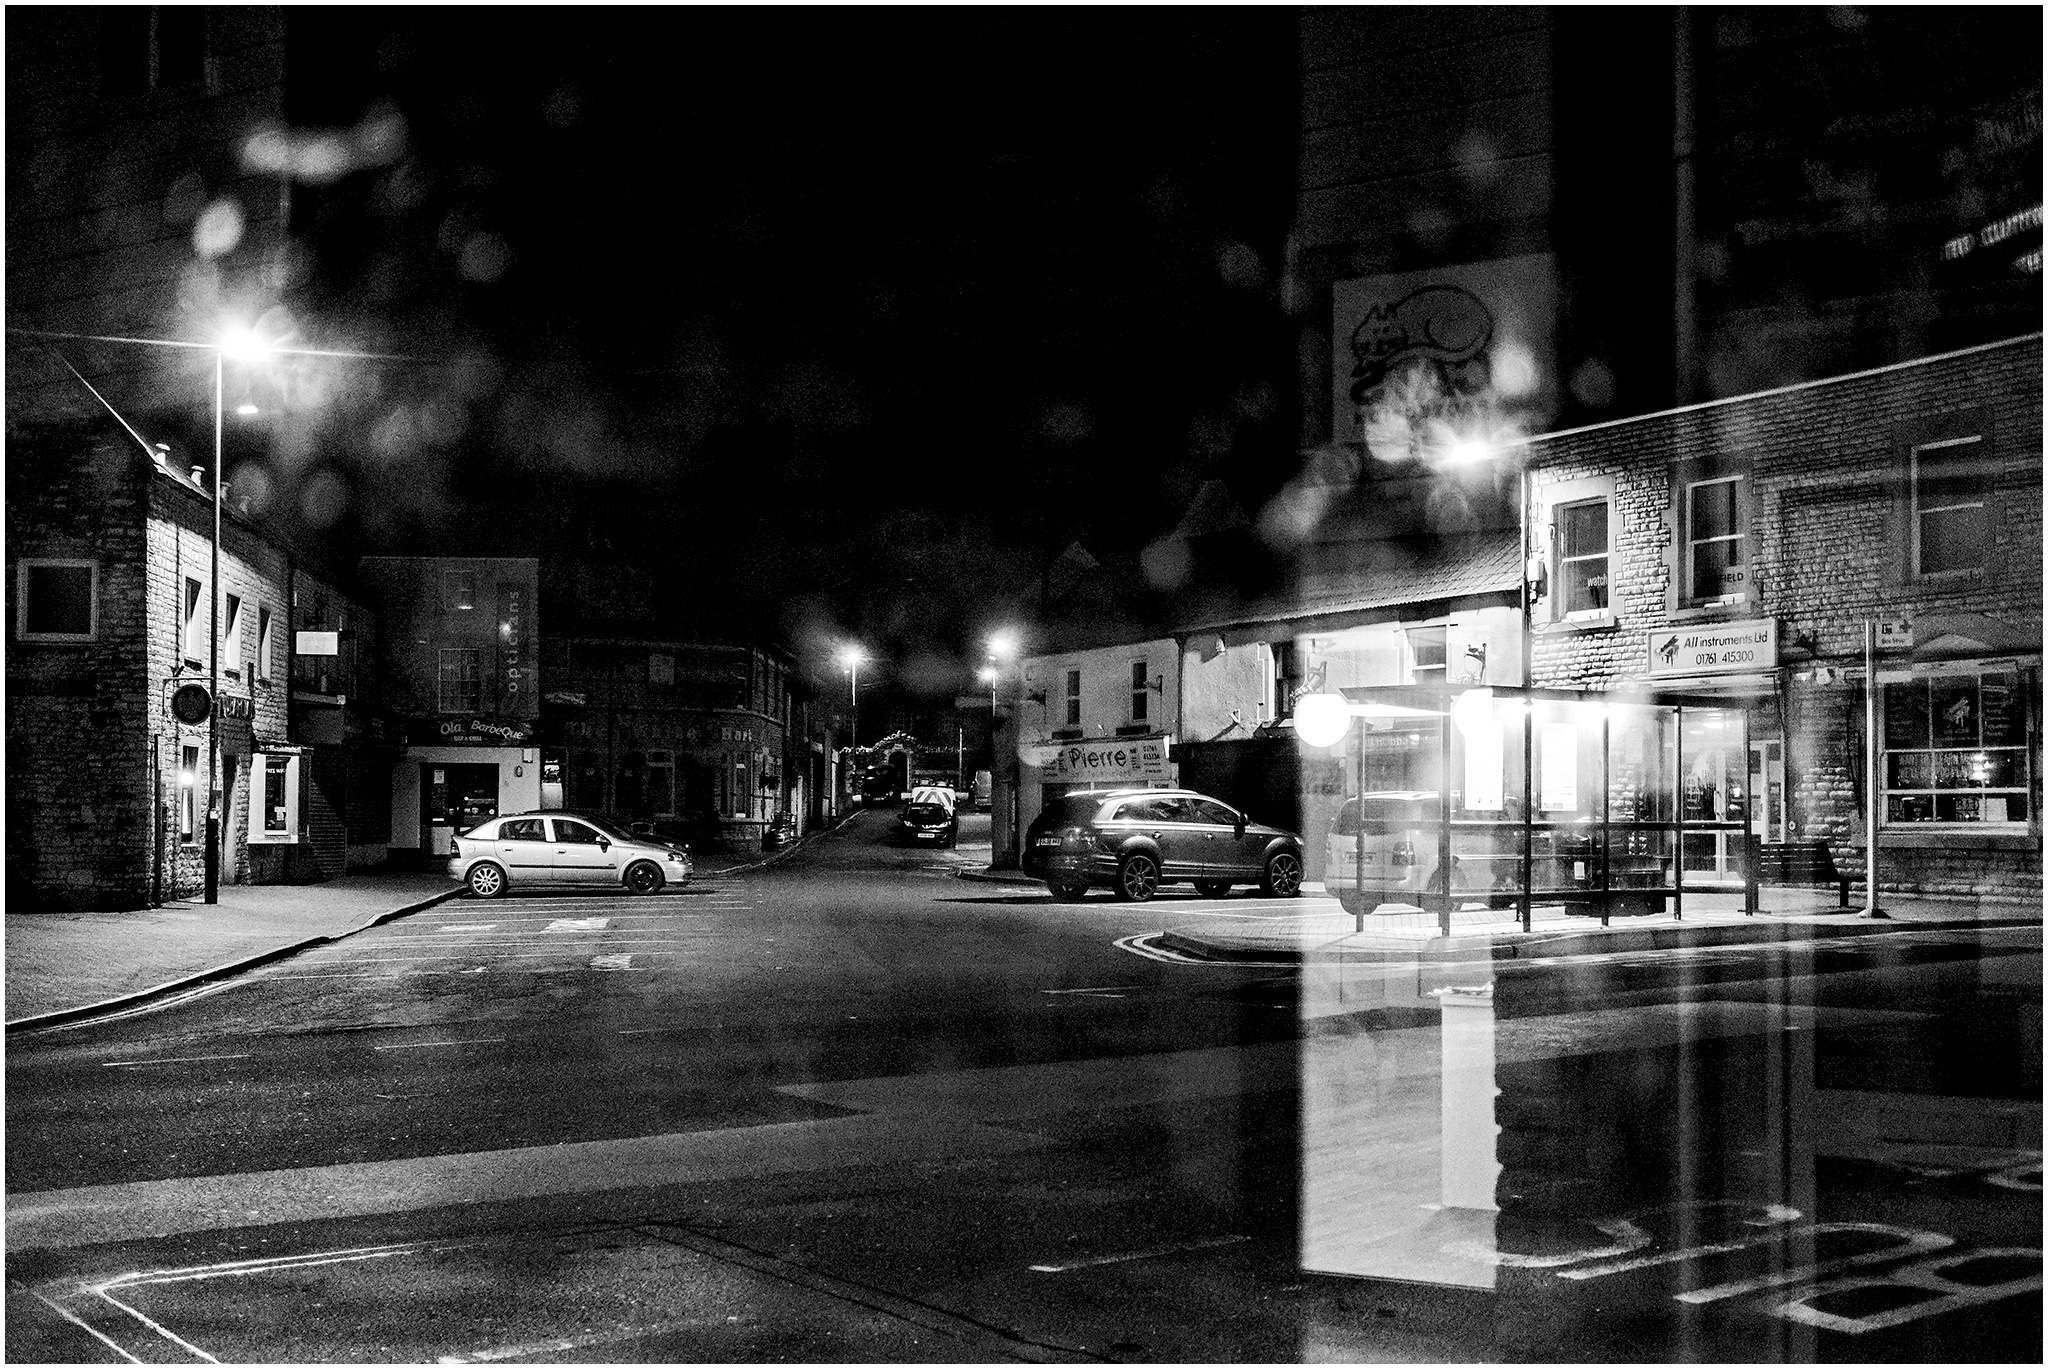 Bus Stop View - B&W by Clive Ayron